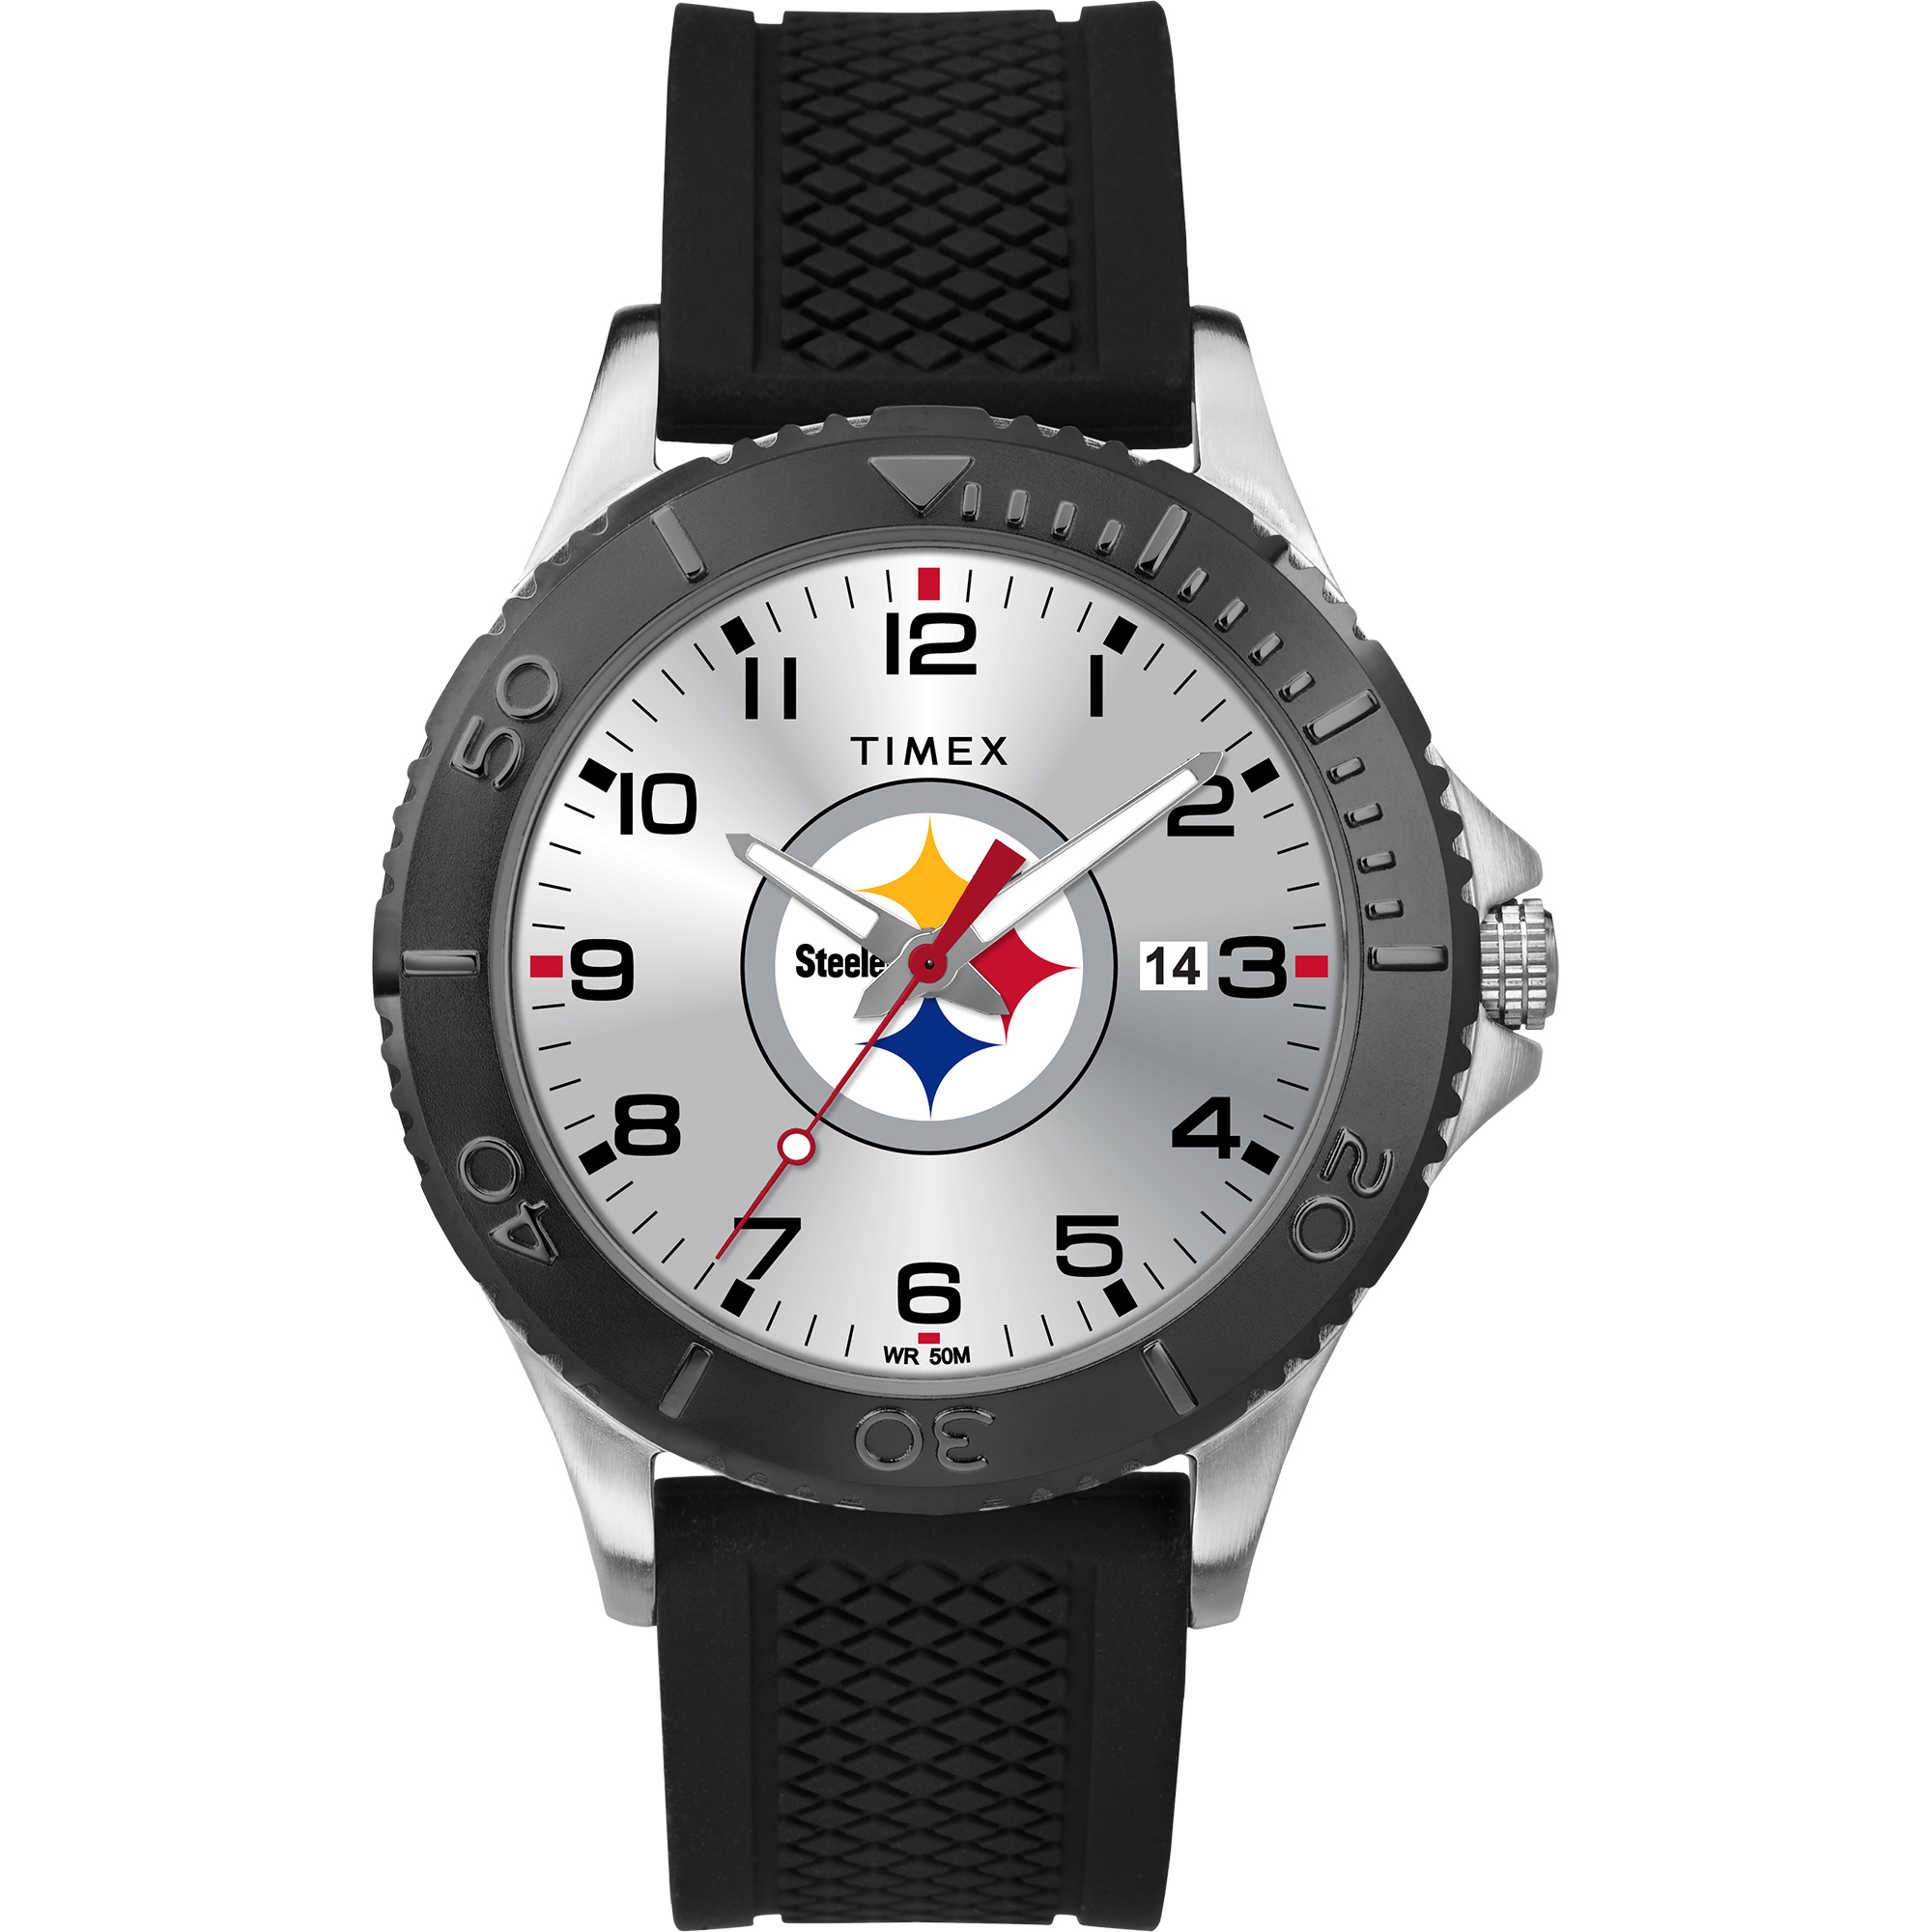 Timex - NFL Tribute Collection Gamer Black Men's Watch, Pittsburgh Steelers